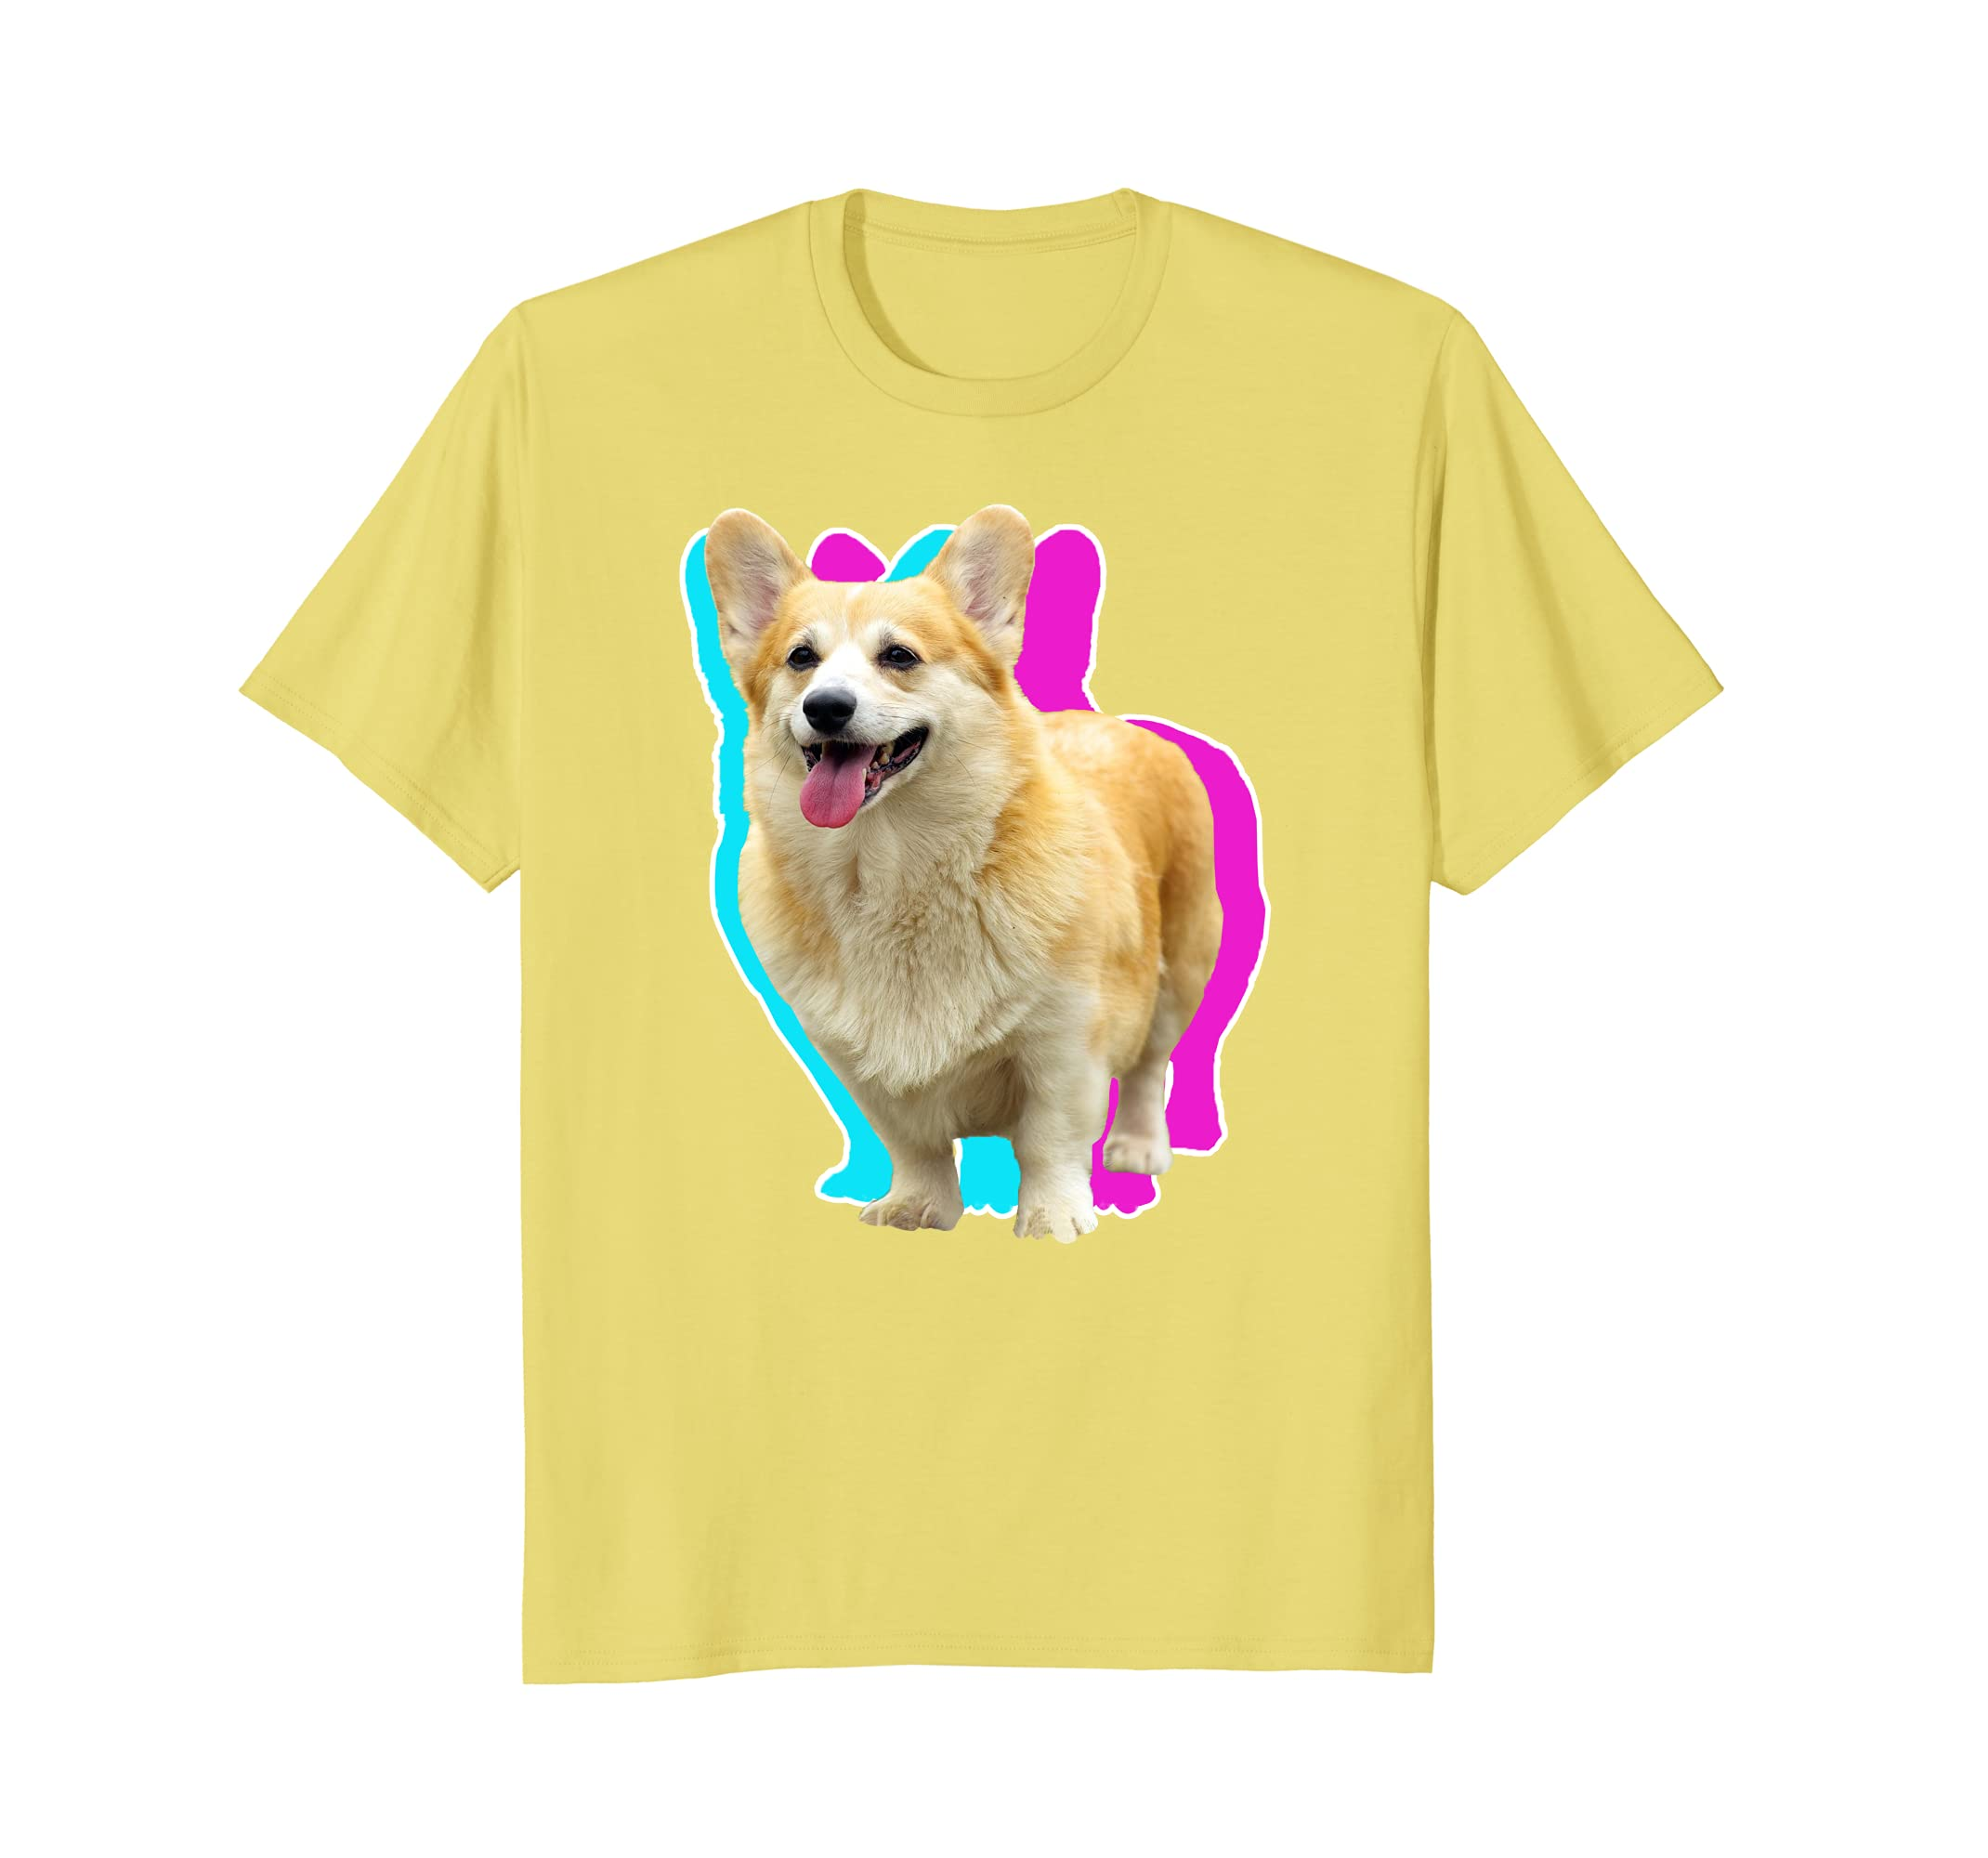 6e6e096208f9 3D Illusion Corgi T-shirt Double Vision Blue Pink-sdu - Shopdungnn